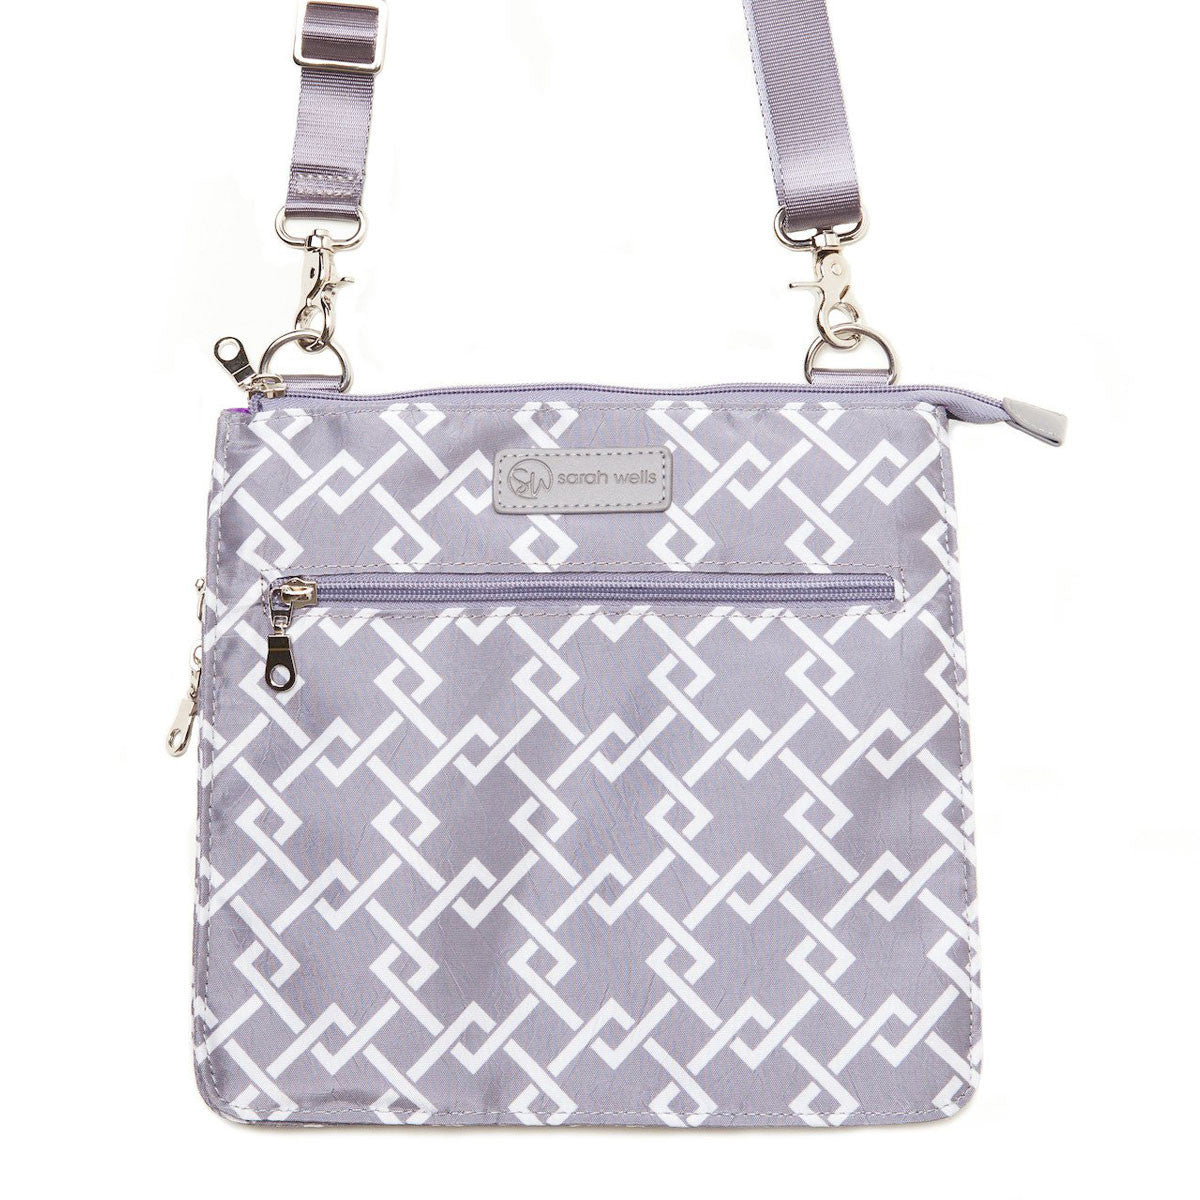 MheartM (gray) - Breast Pump Bags and Pumping Accessories from Sarah Wells Bags